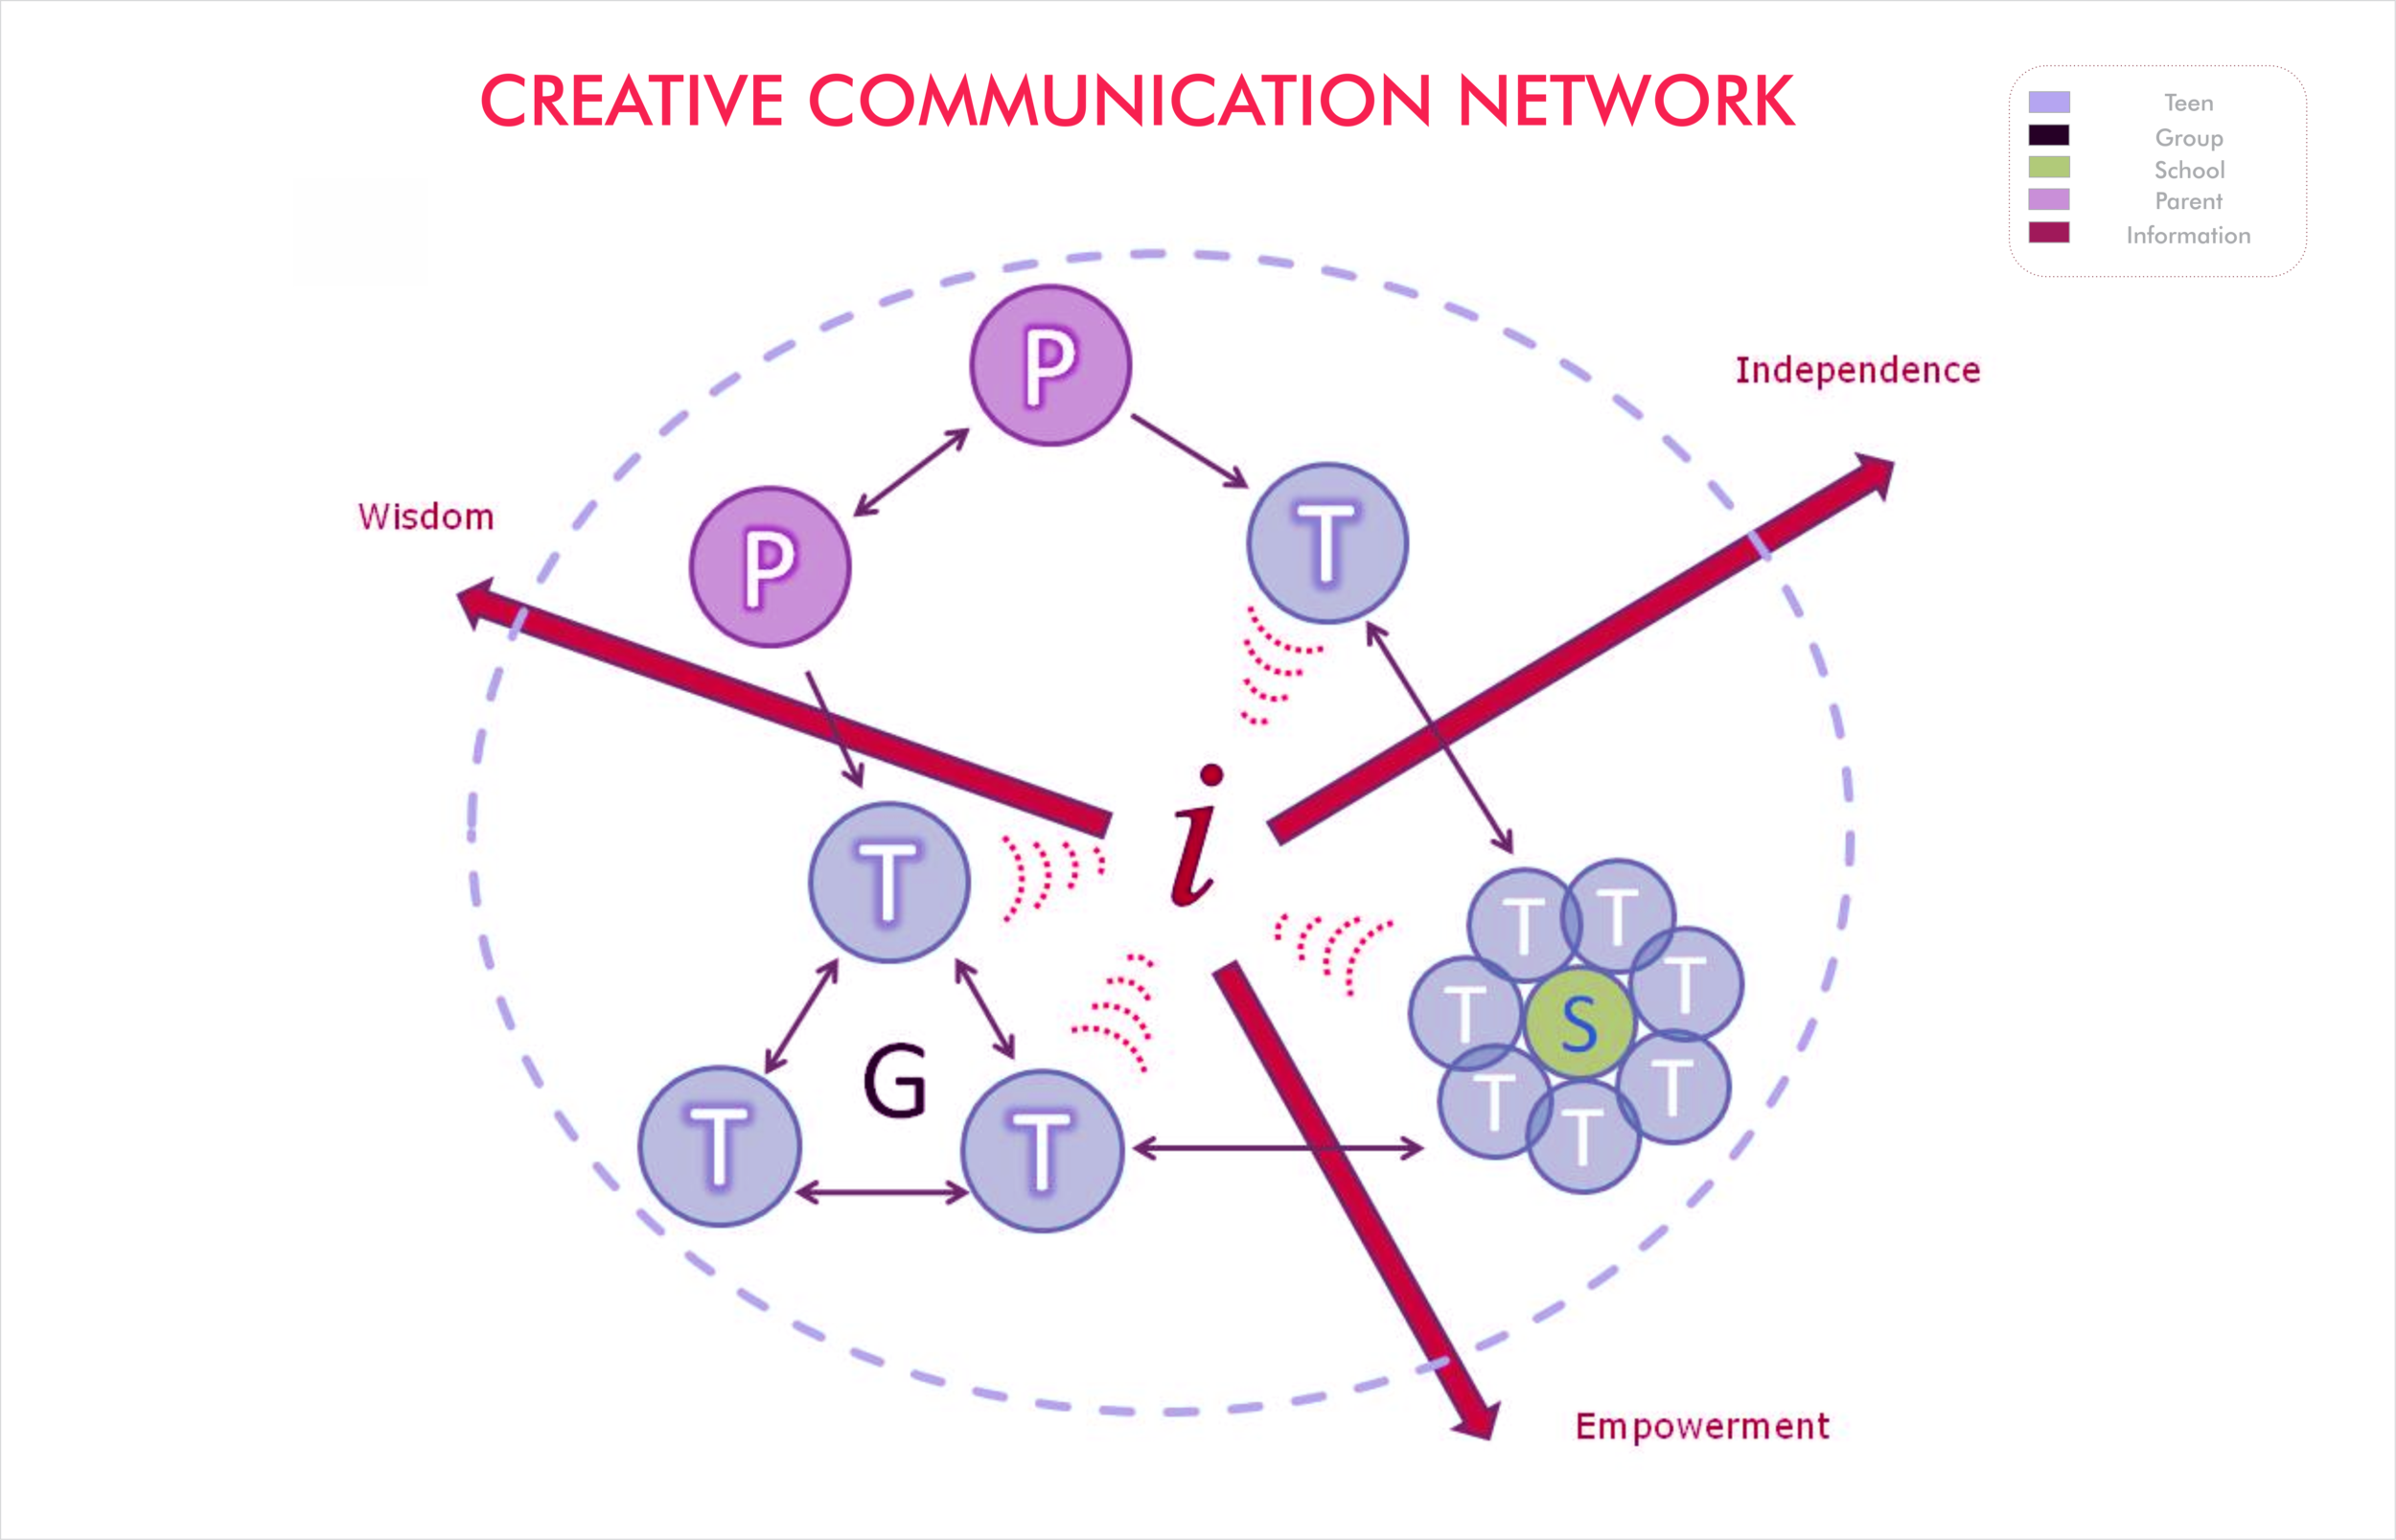 Creation of the 'Creative Current': knowledge is generated, shared, supported  Challenge the dominant paradigm by enabling girls to push boundaries. Our goal is to use product and its service to empower future generations of women. These serve as a tool to relay knowledge into wisdom and consequently promote independence.